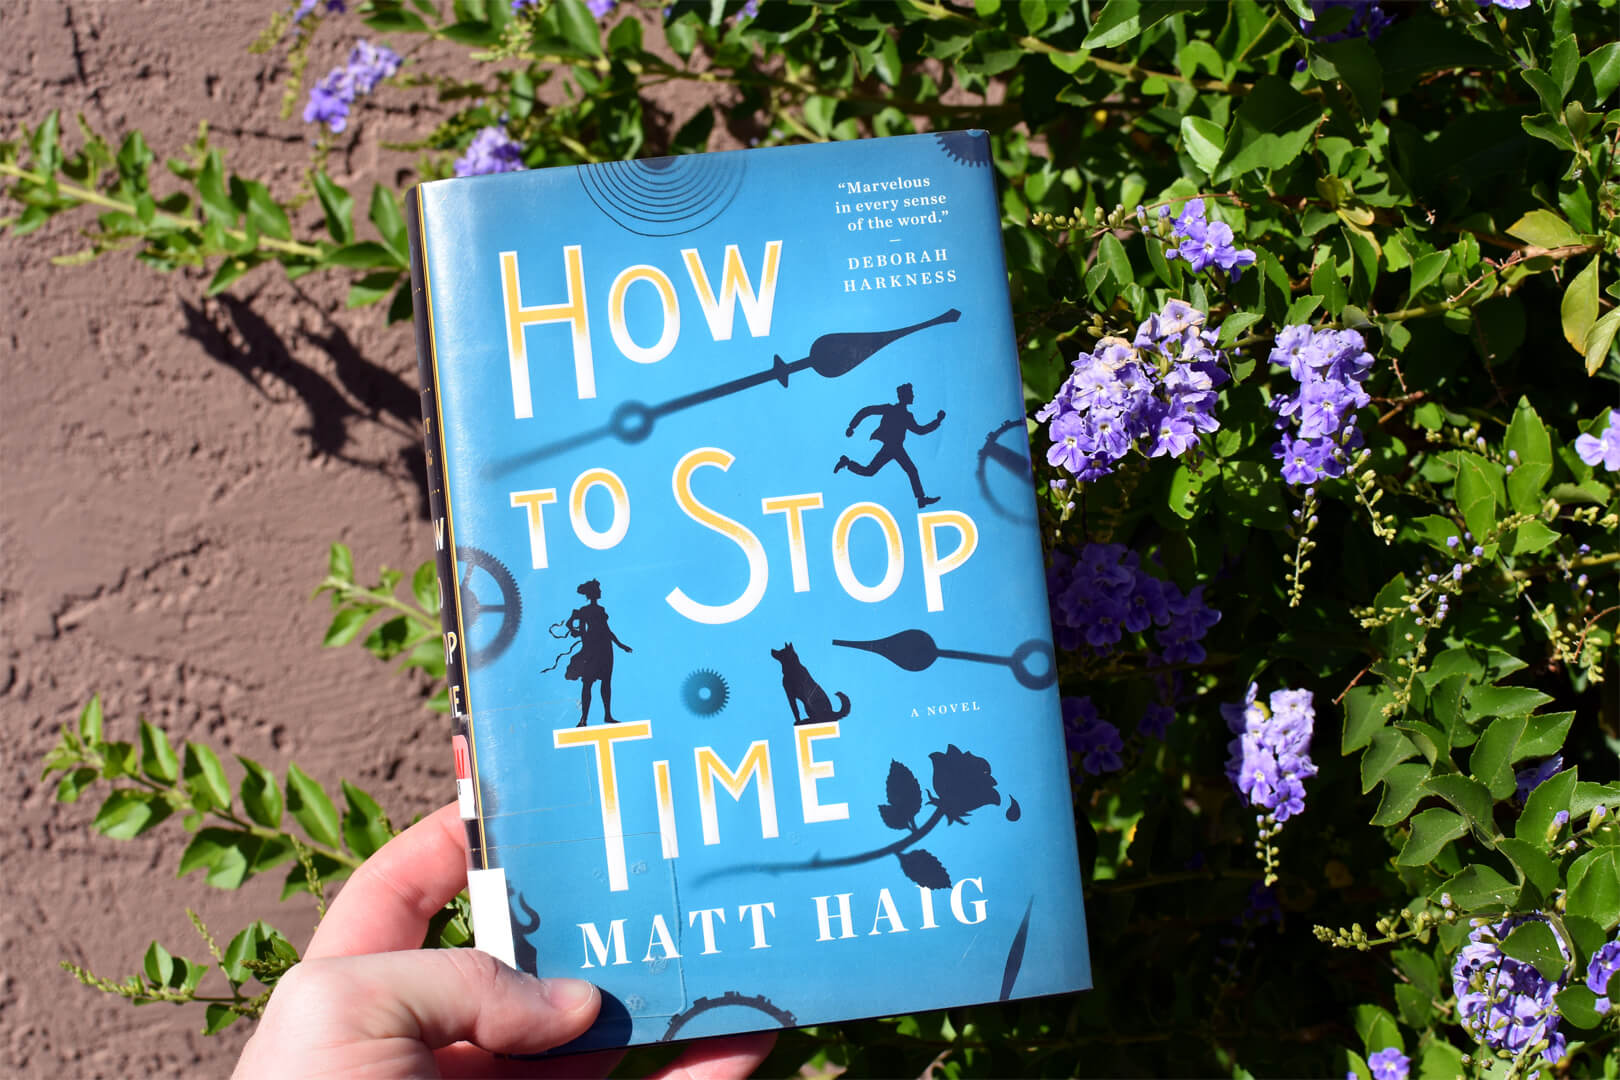 How To Stop Time Book Club Questions - Book Club Chat